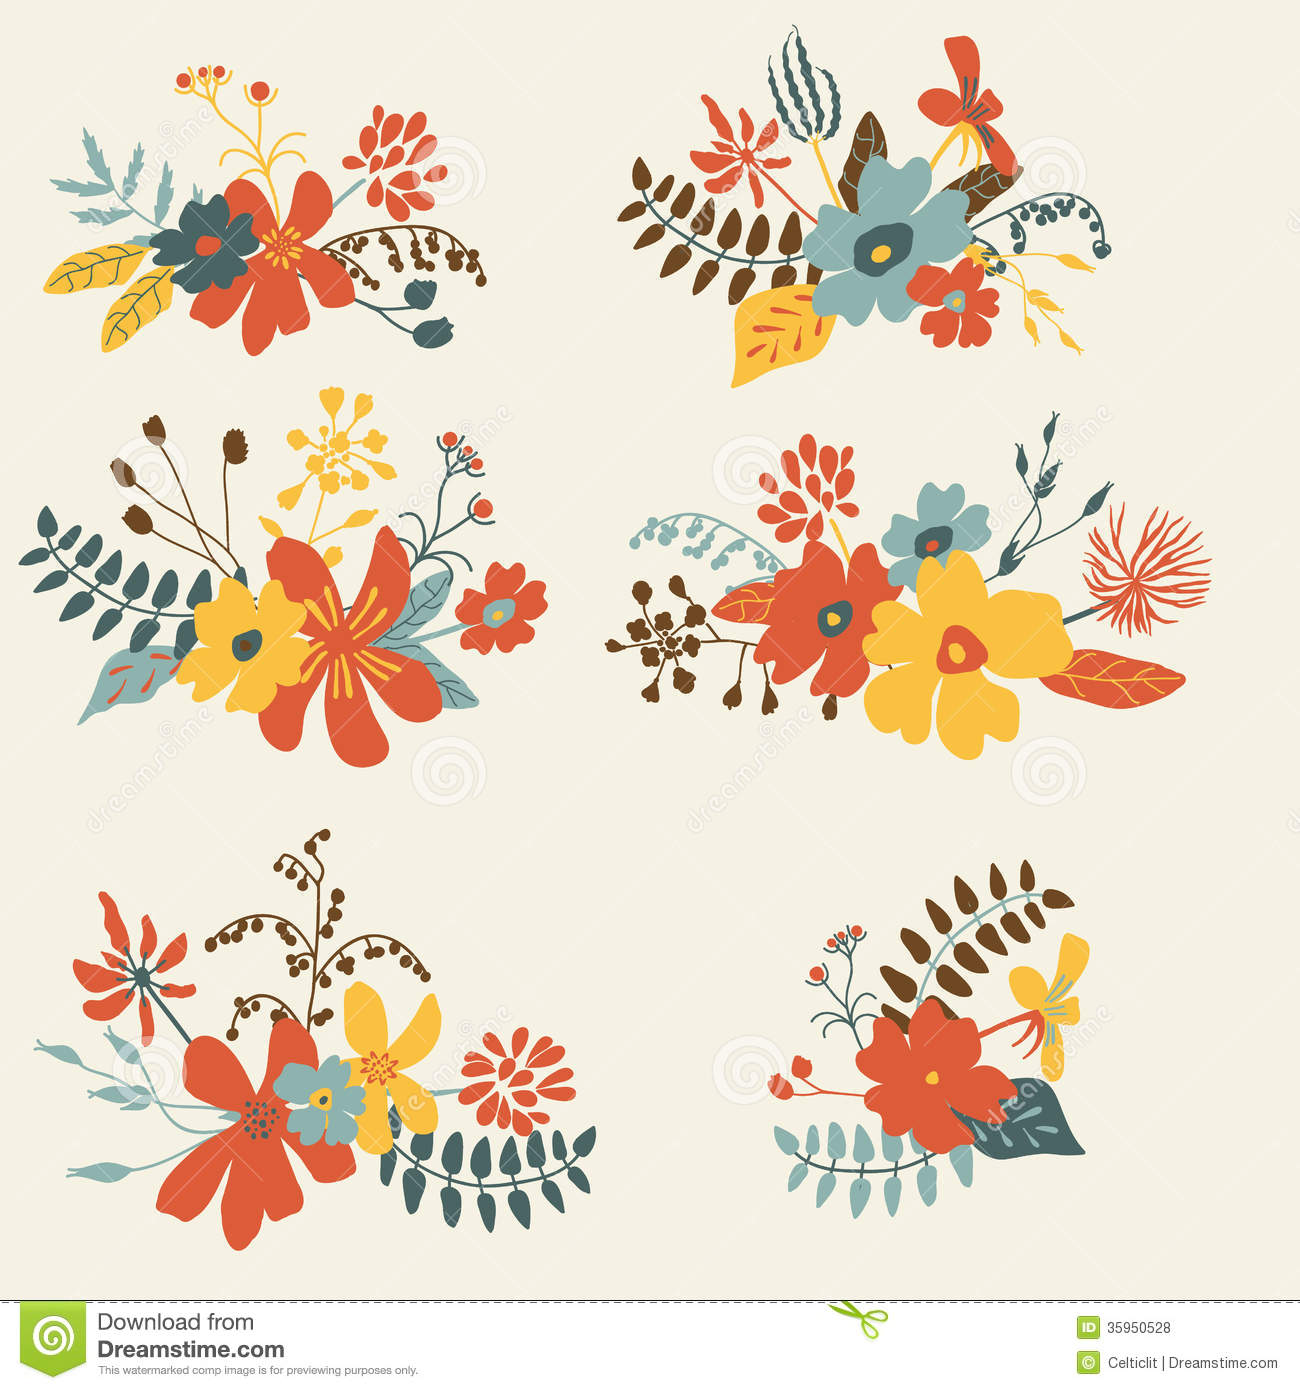 Floral graphic designs svg freeuse stock Graphic flower designs - ClipartFest svg freeuse stock